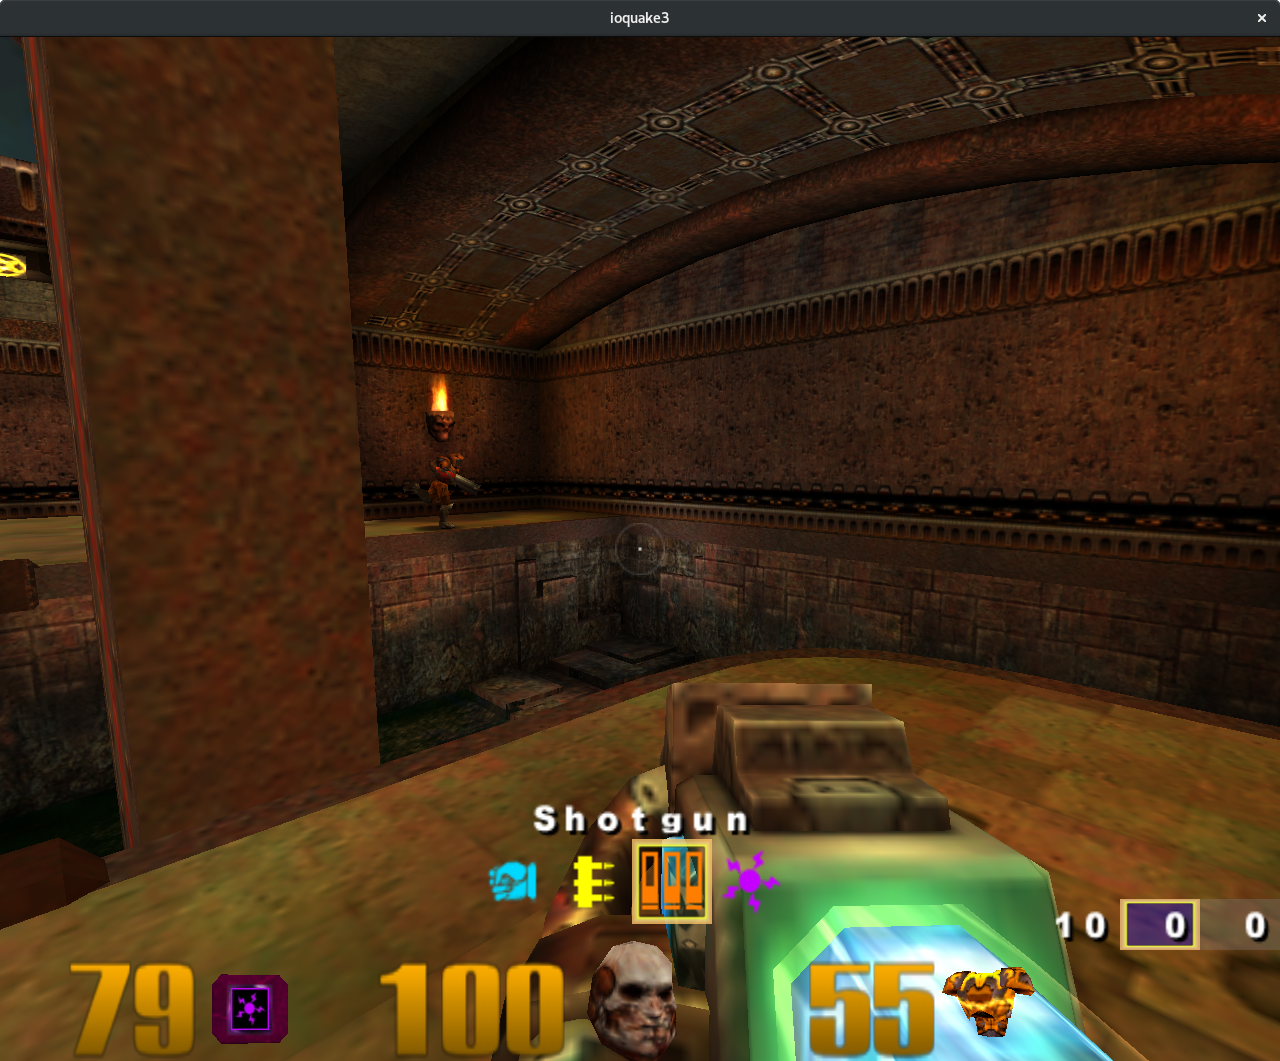 Quake 3 on Zink